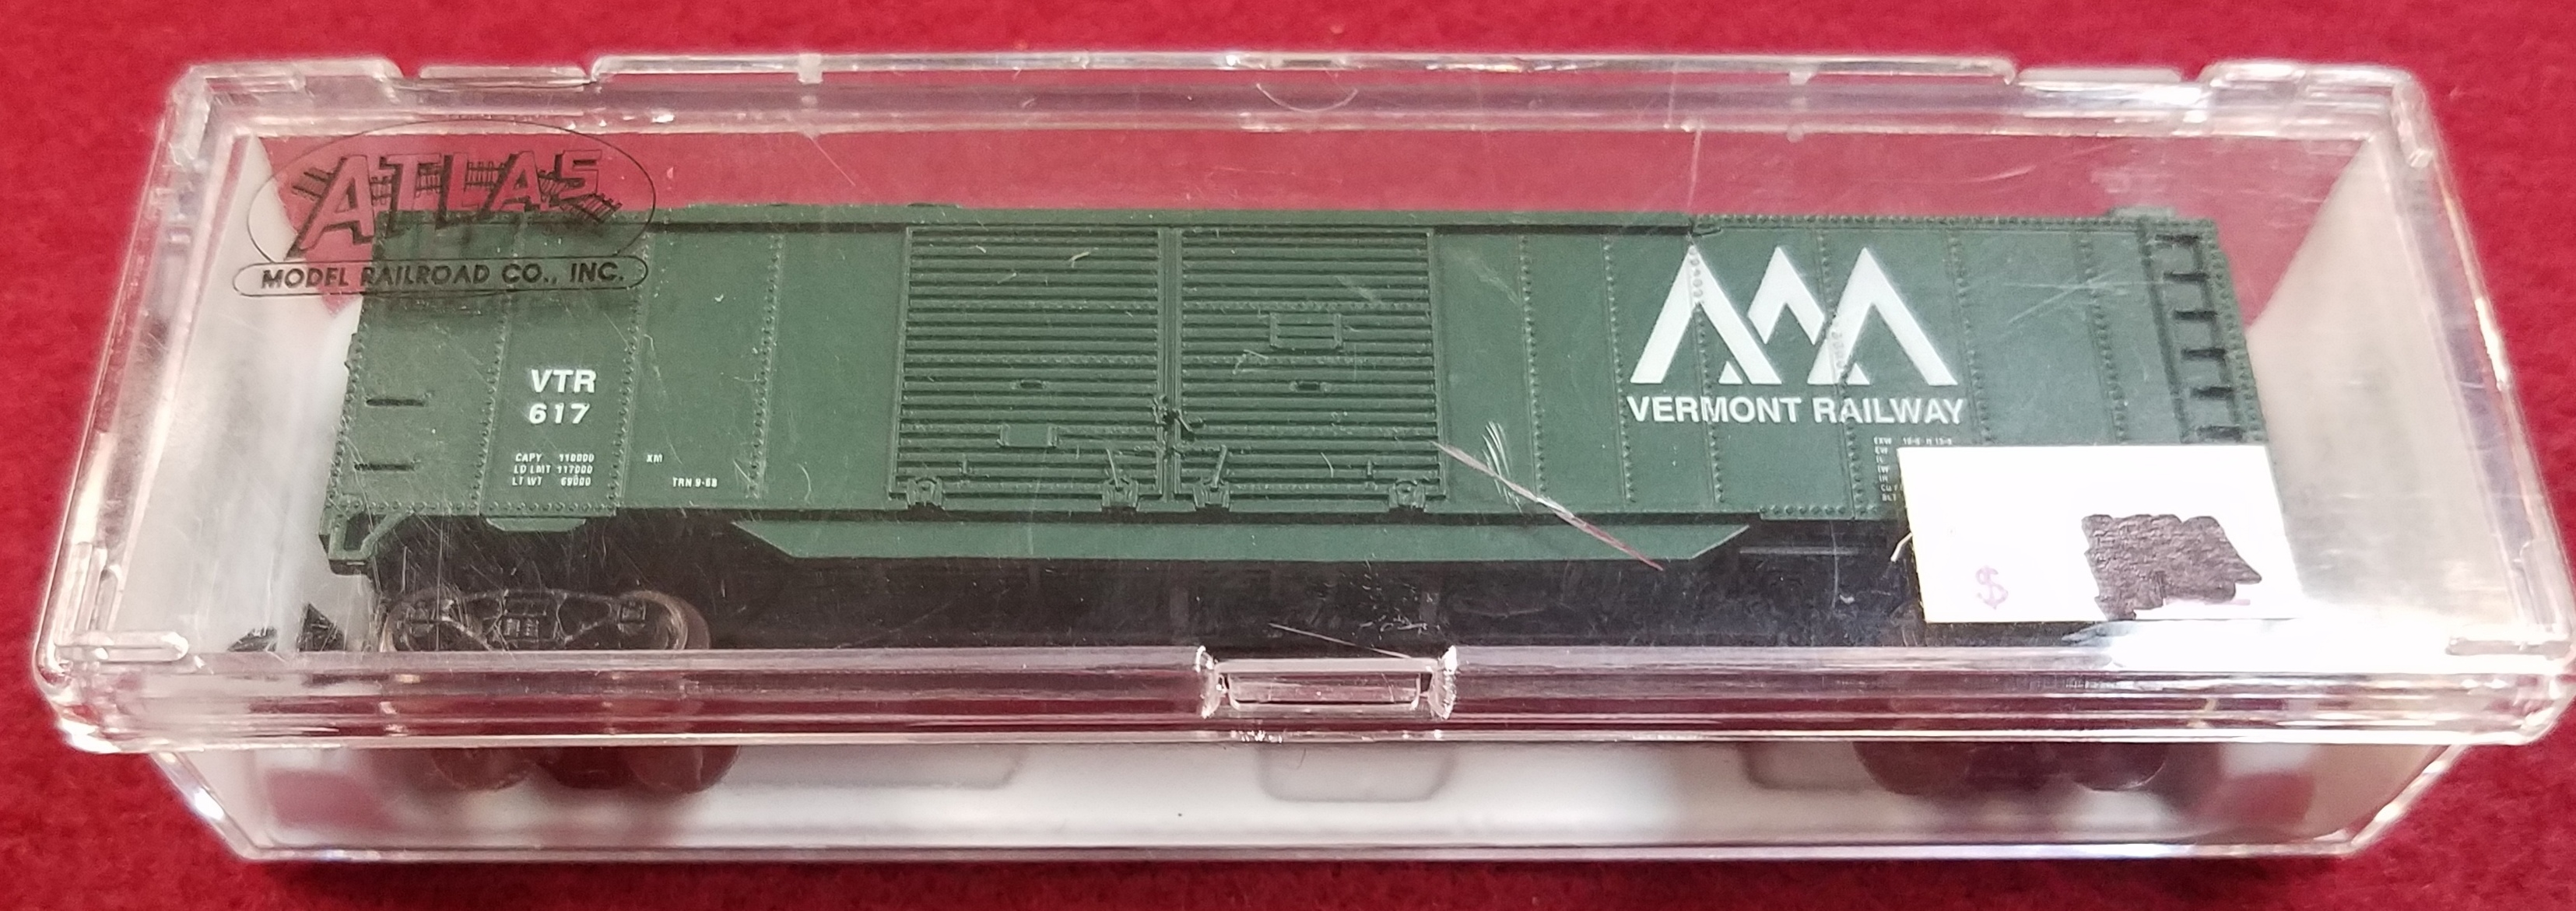 ATLAS - N SCALE - VTR 617 - 3630 50' DBL DOOR BOX CAR - VERMONT RAILWAY